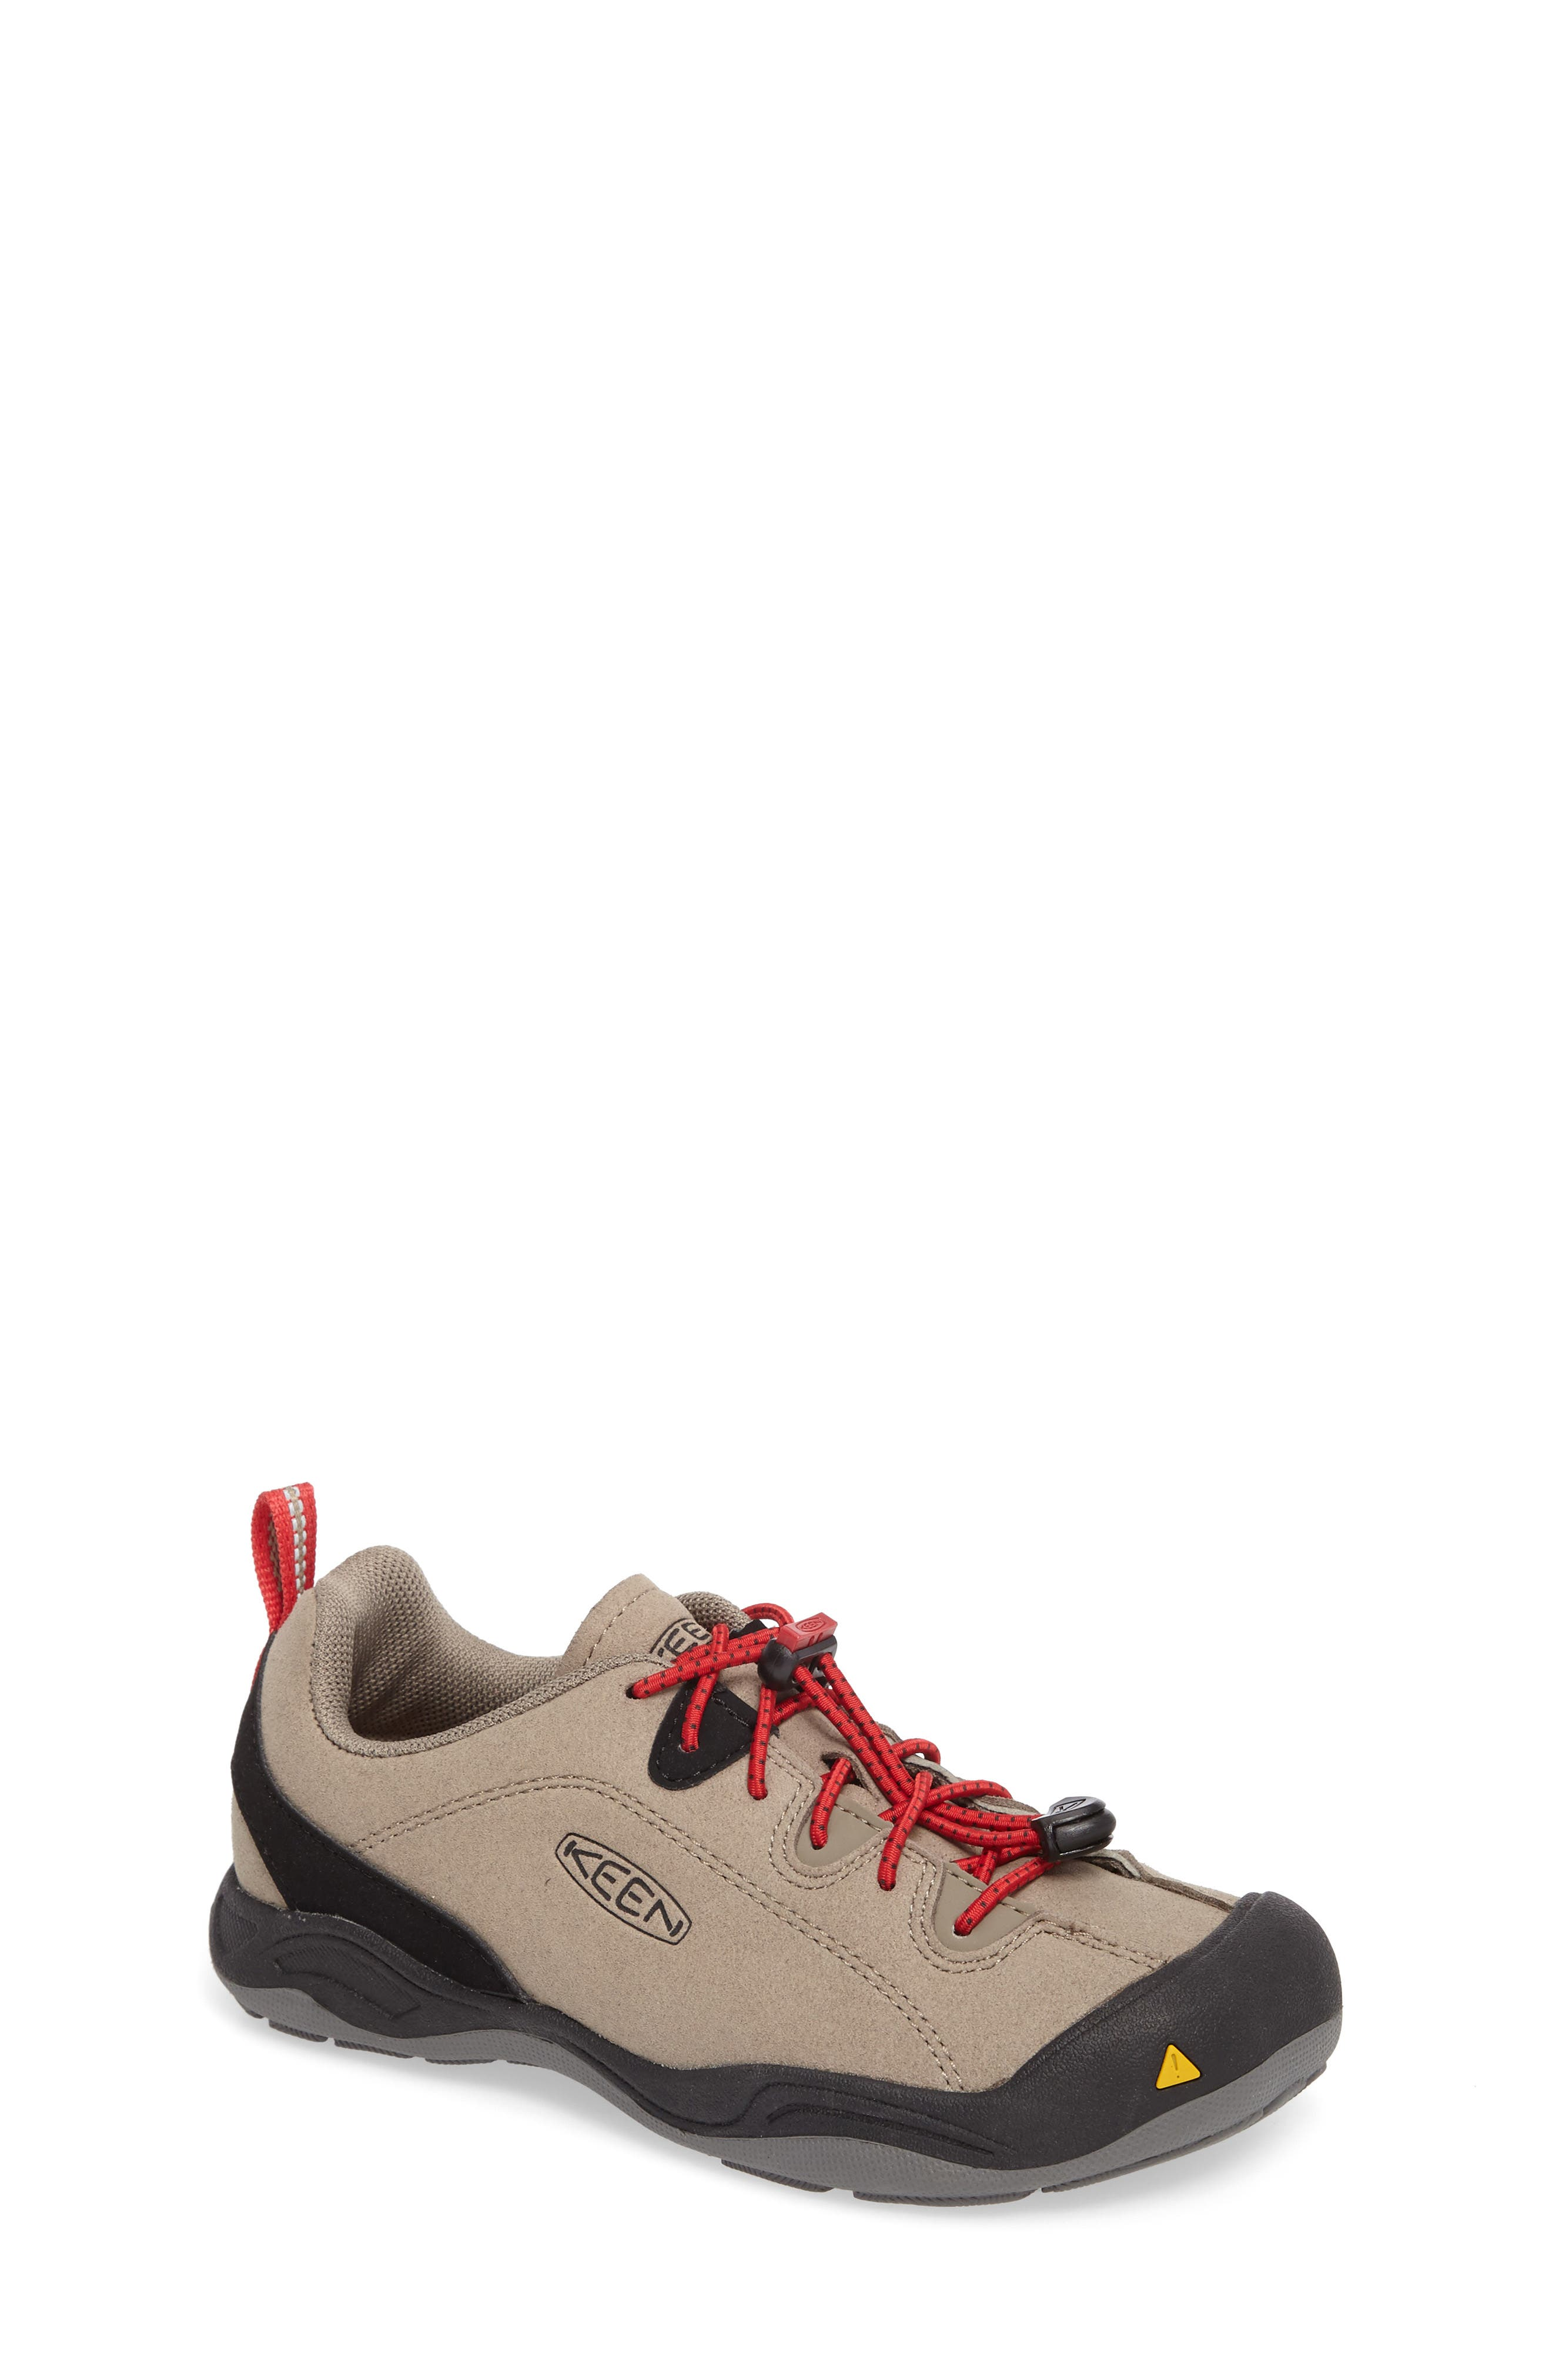 Alternate Image 1 Selected - Keen Jasper Sneaker (Toddler, Little Kid & Big Kid)